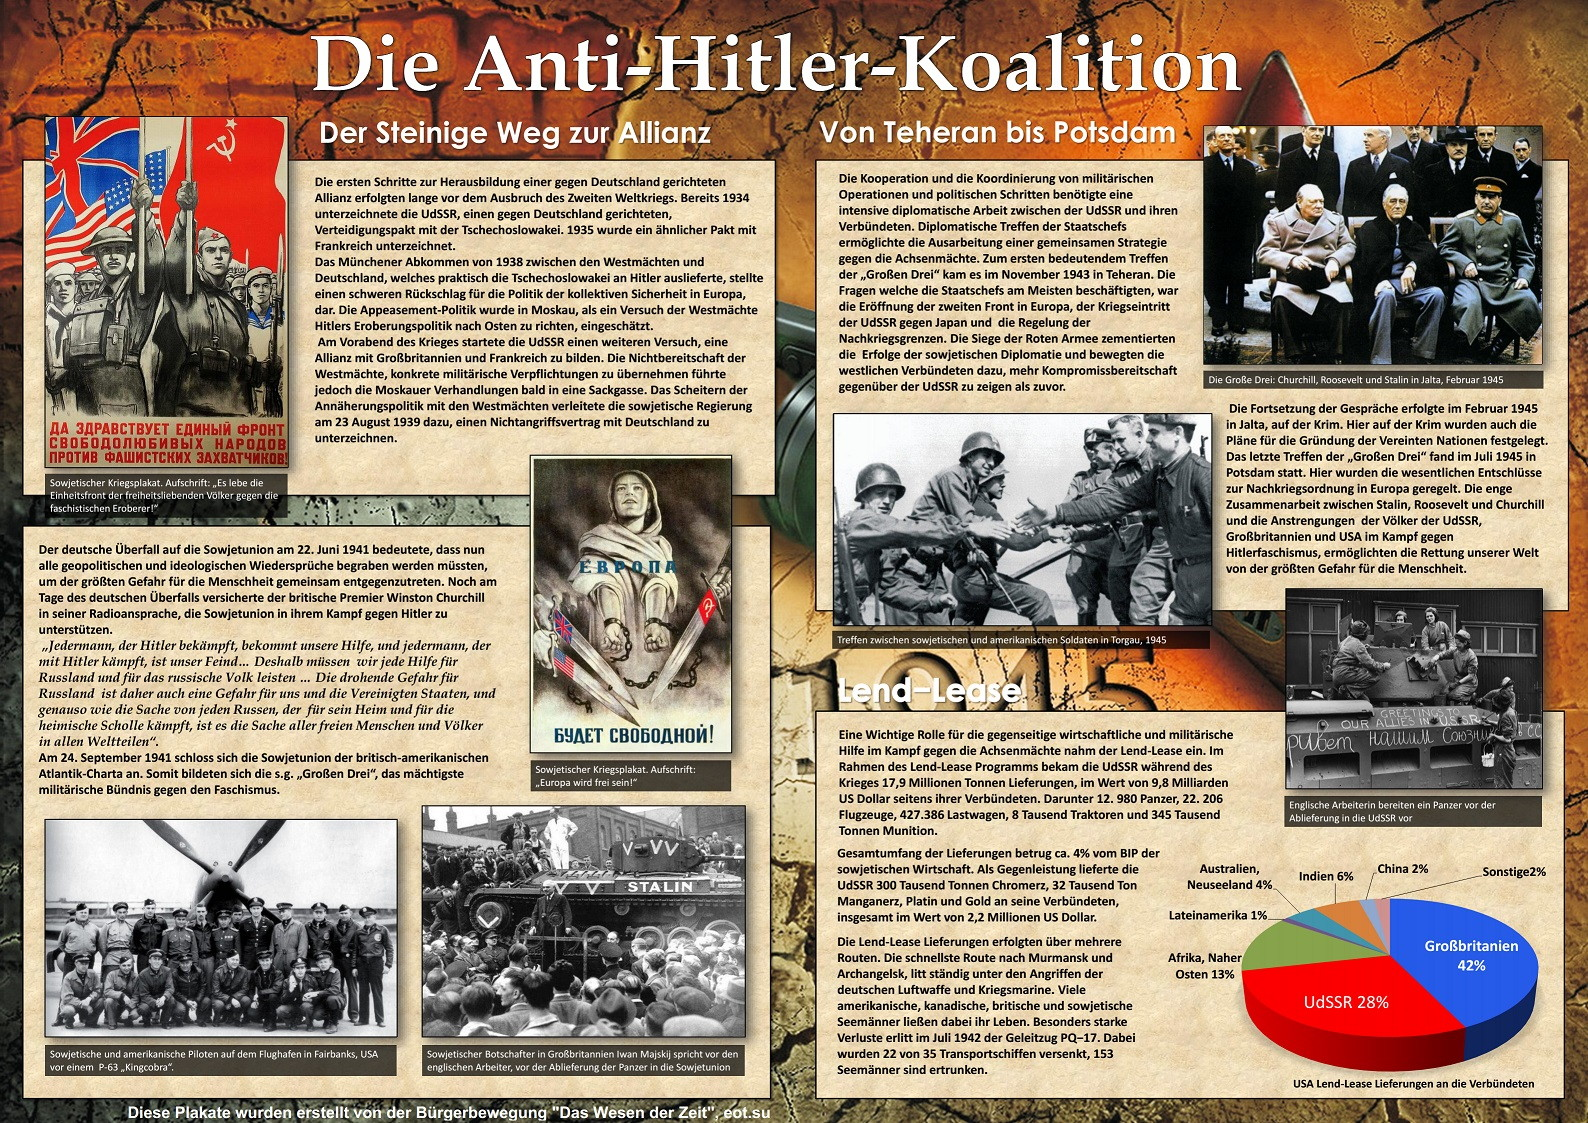 8. Die Anti-Hitler-Koalition